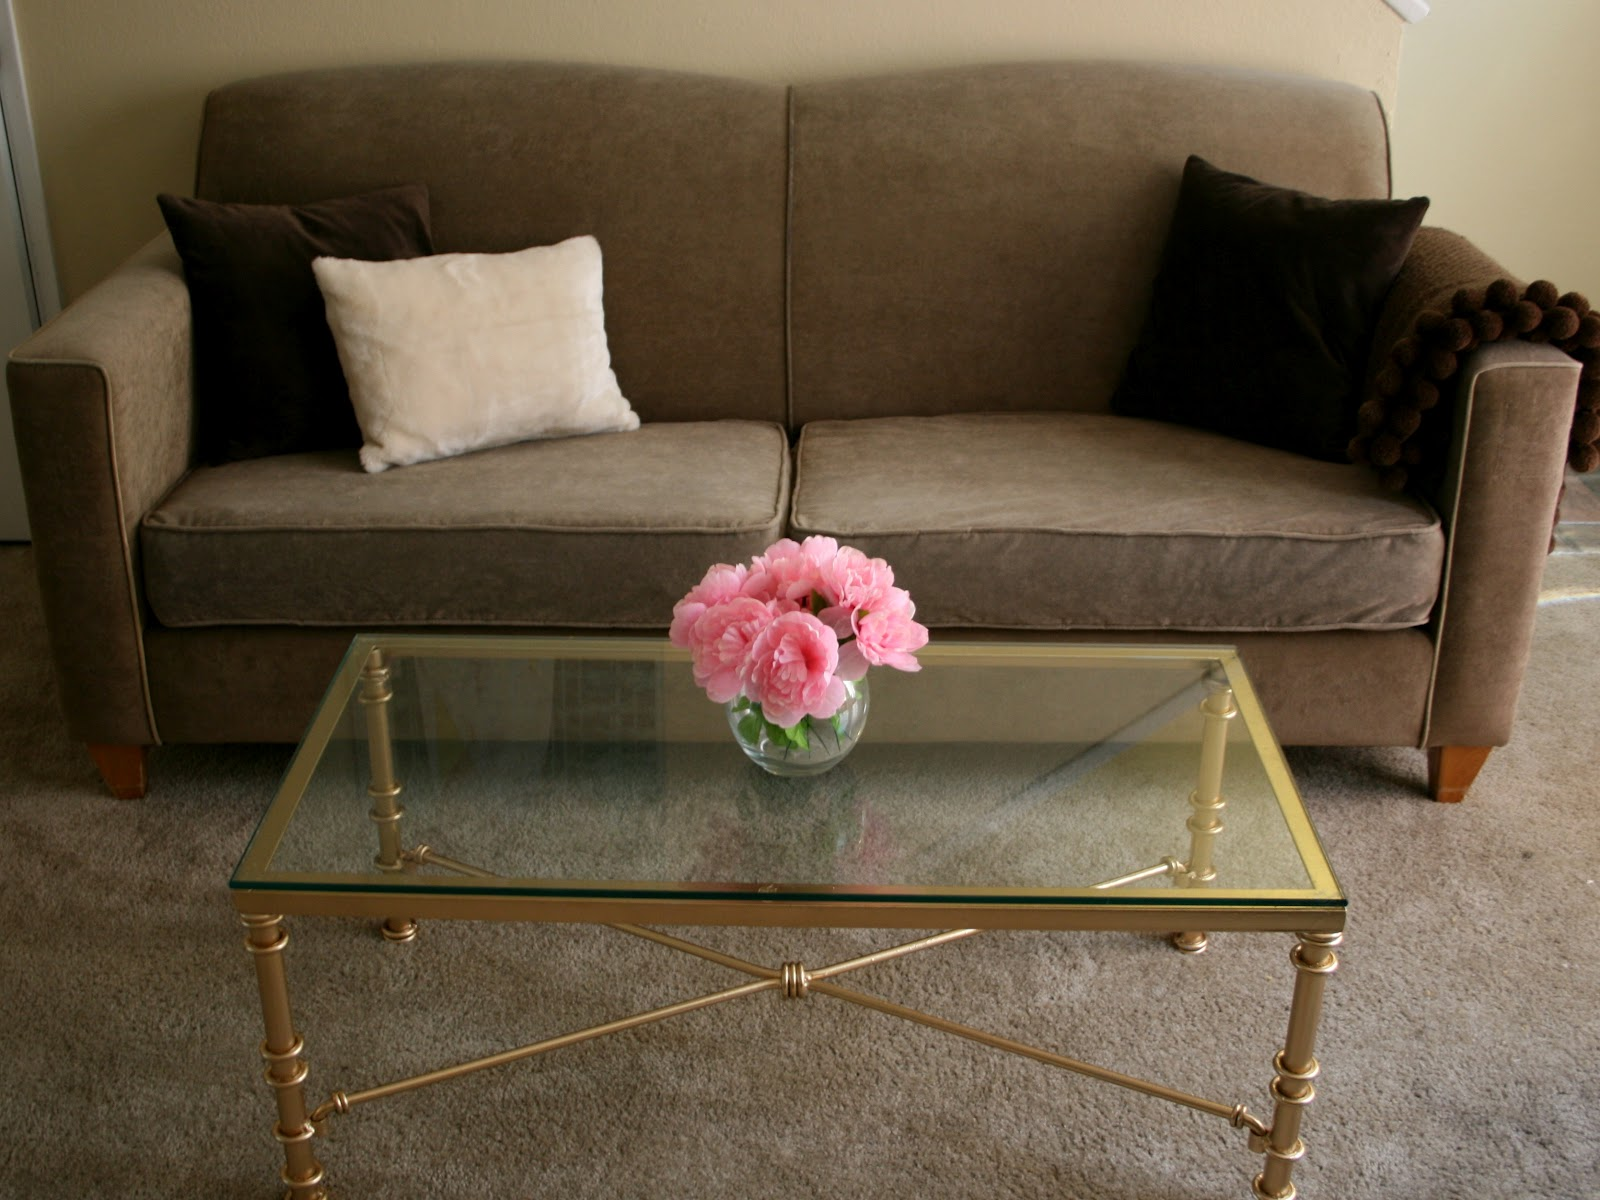 2019 Best Of Glass Gold Coffee Table